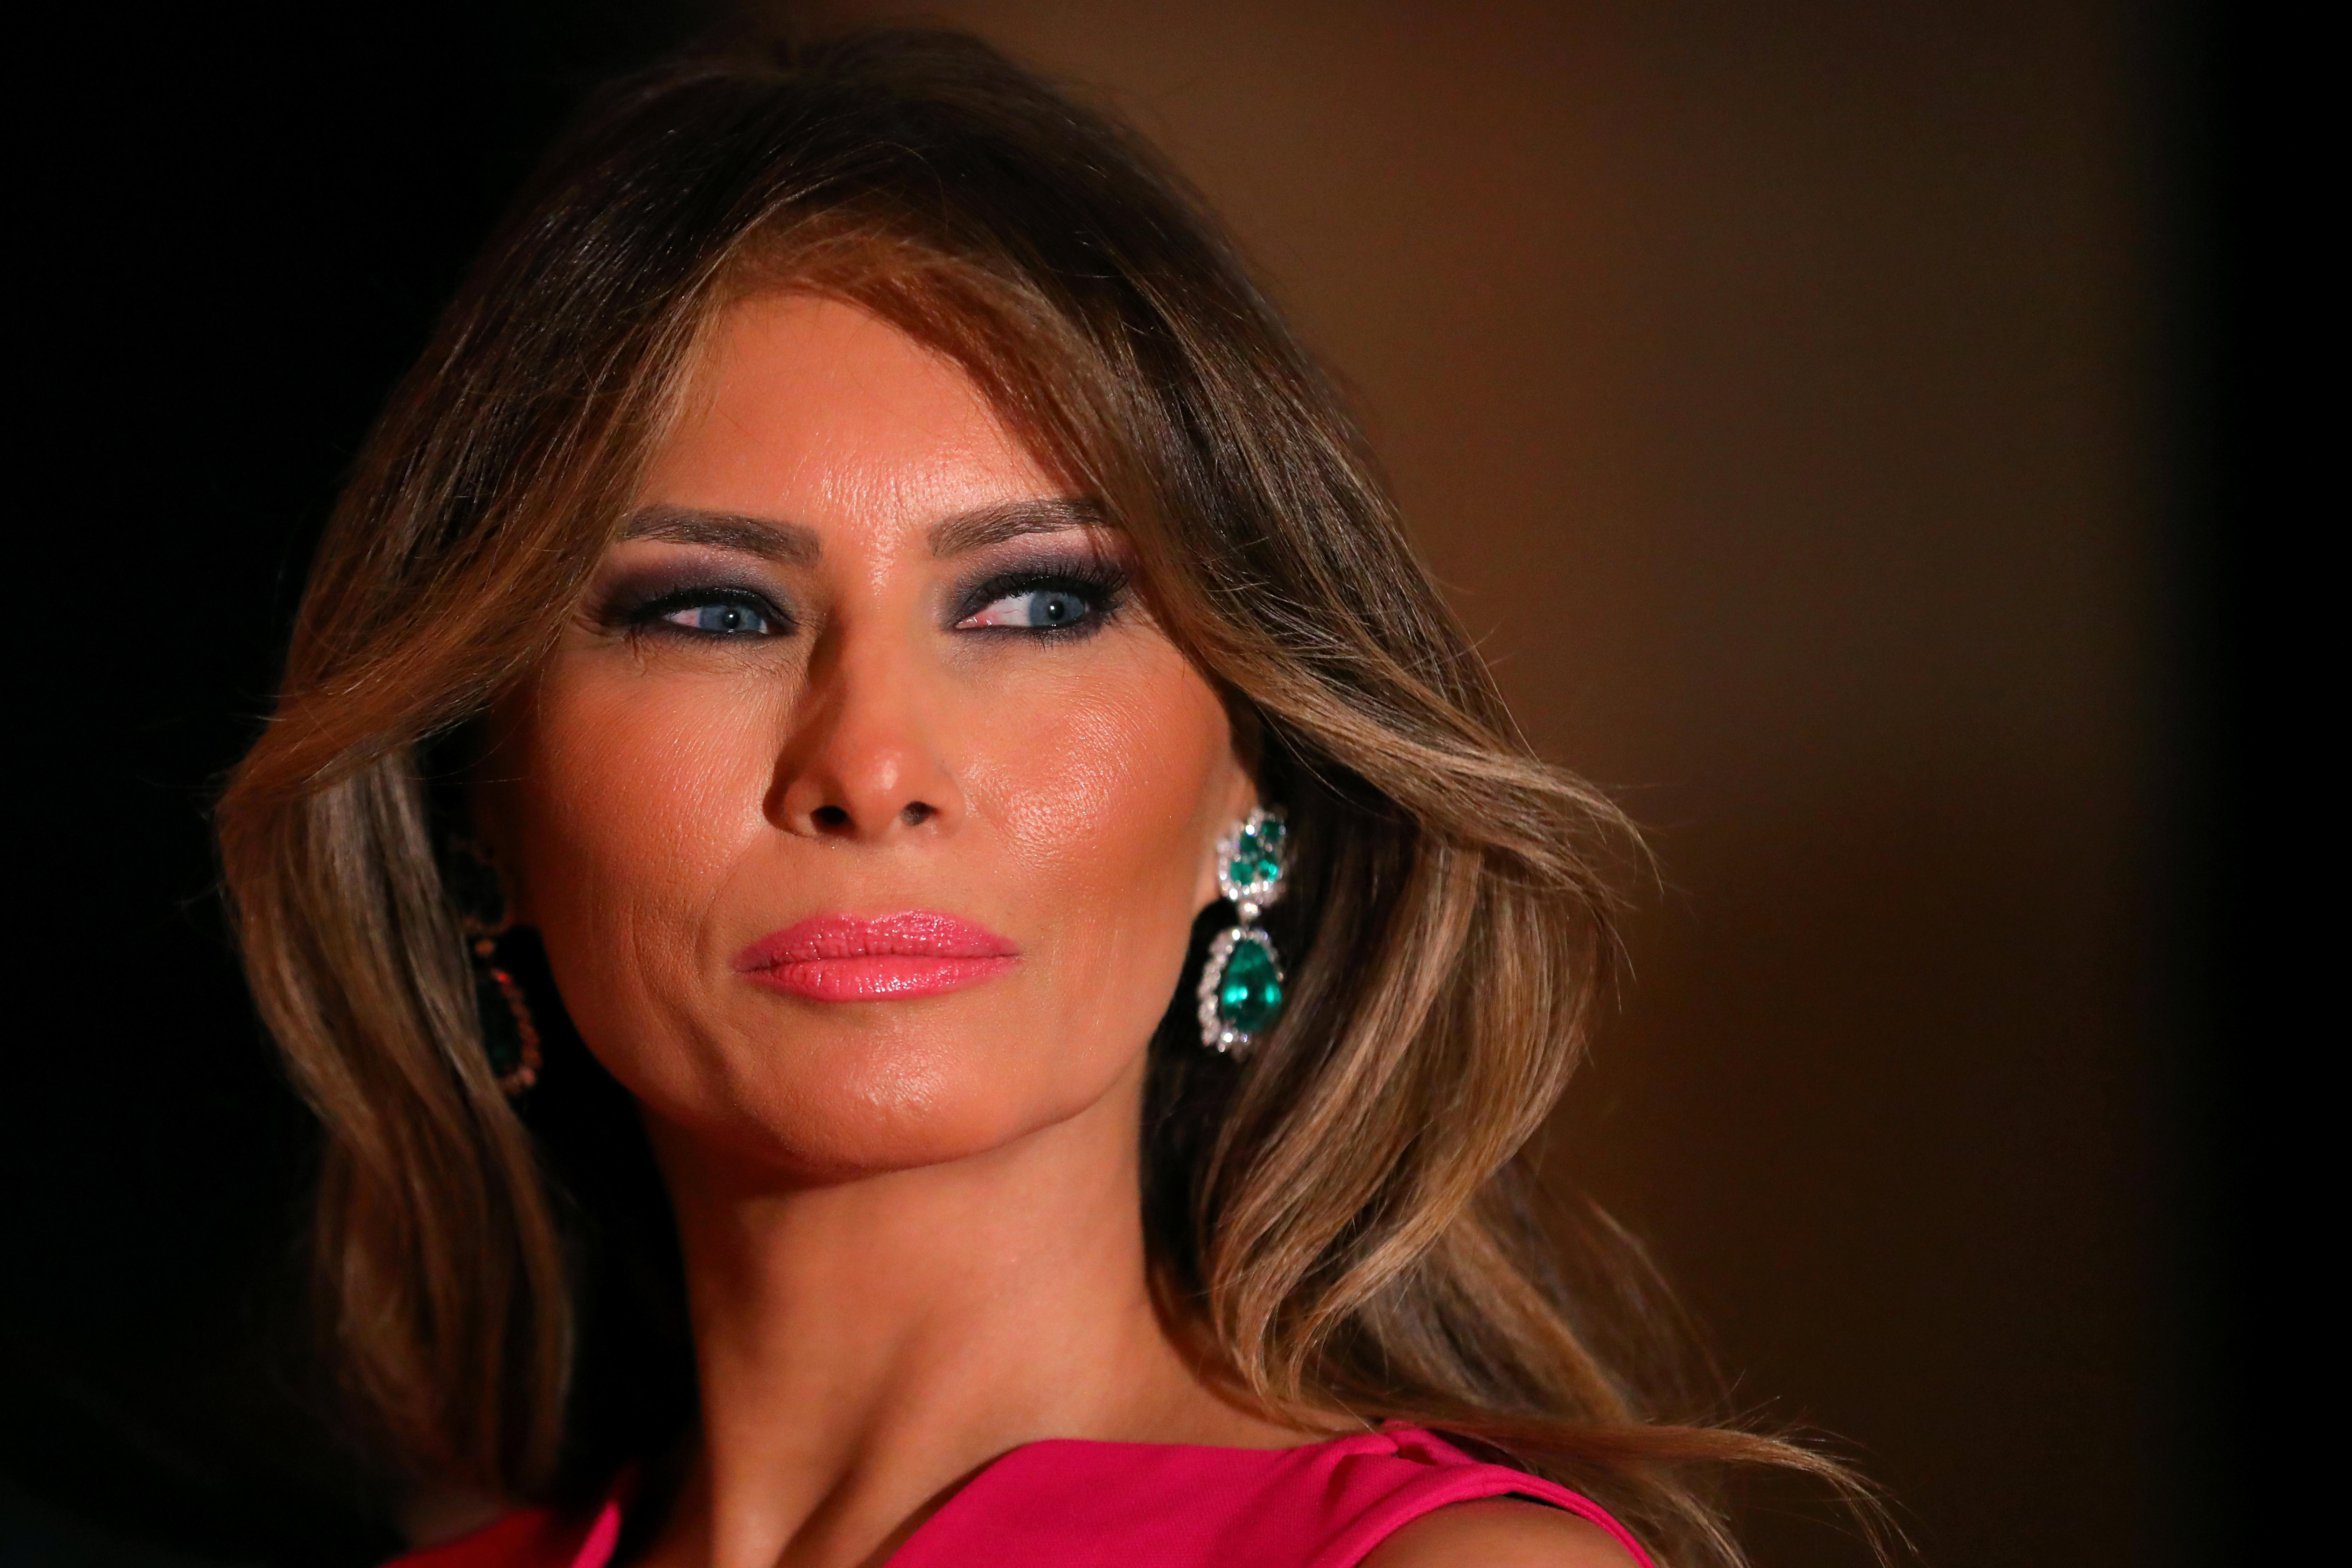 a1c4bf53a062e Melania Trump libel suit settled, another filed - CBS News